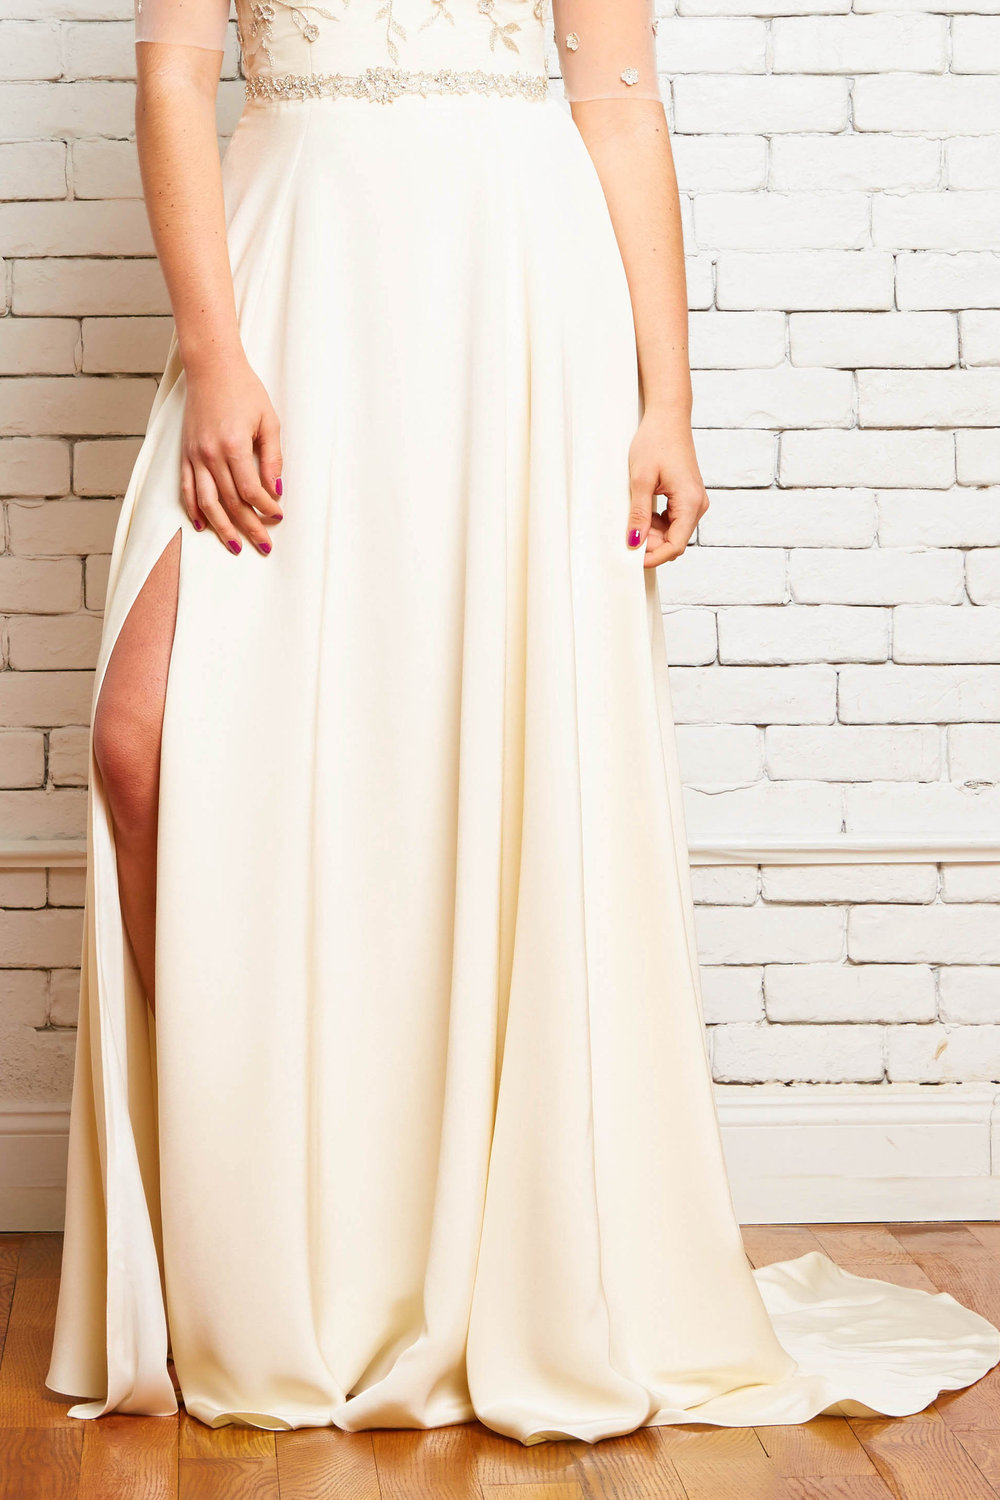 5C Brynn Front Skirt-Rebecca Schoneveld-Slit_Wedding_ Separates_Skirt_A-line_Modern_Flowy.jpg